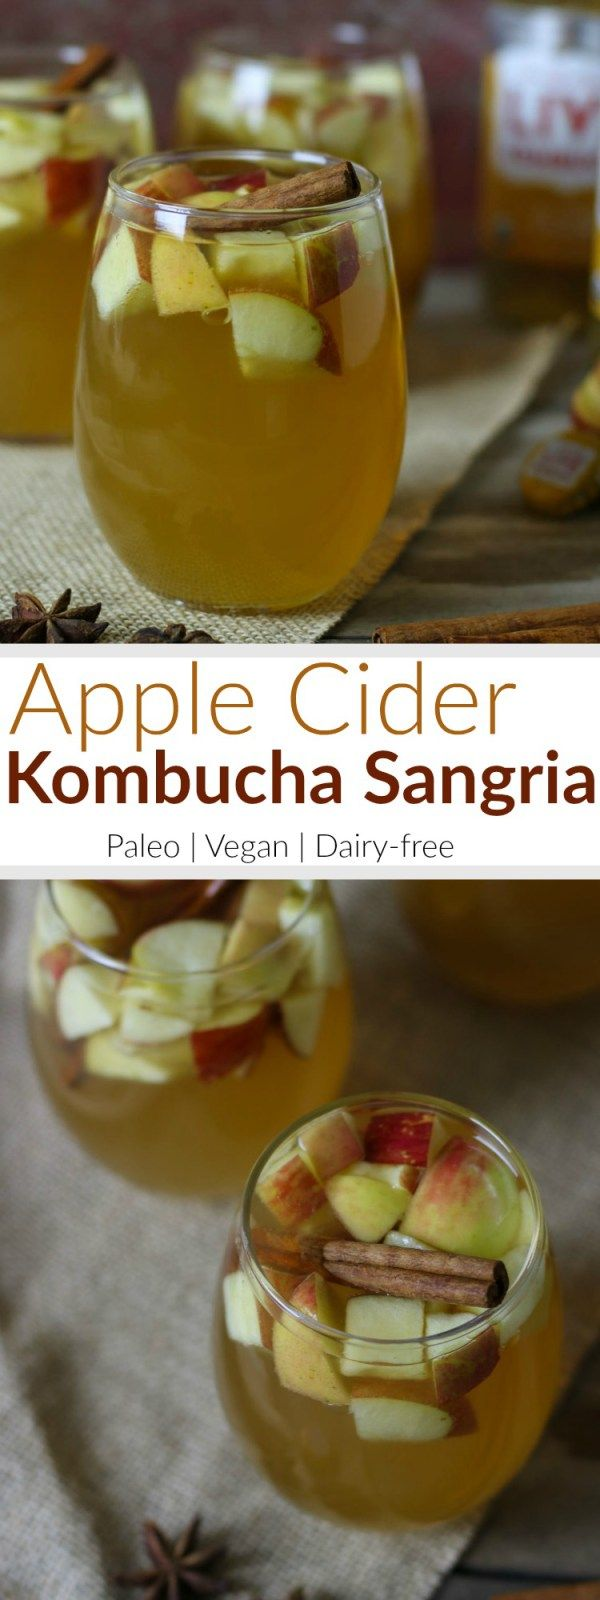 Apple Cider Kombucha Sangria recipe combines no-added sugar spiced apple cider, white wine, apple brandy, ginger kombucha, chunks of perfectly crisp apples and deliciously spiced with cinnamon sticks, whole cloves and star anise. A perfect Holiday cocktail | Paleo | Vegan | therealfoodrds.com